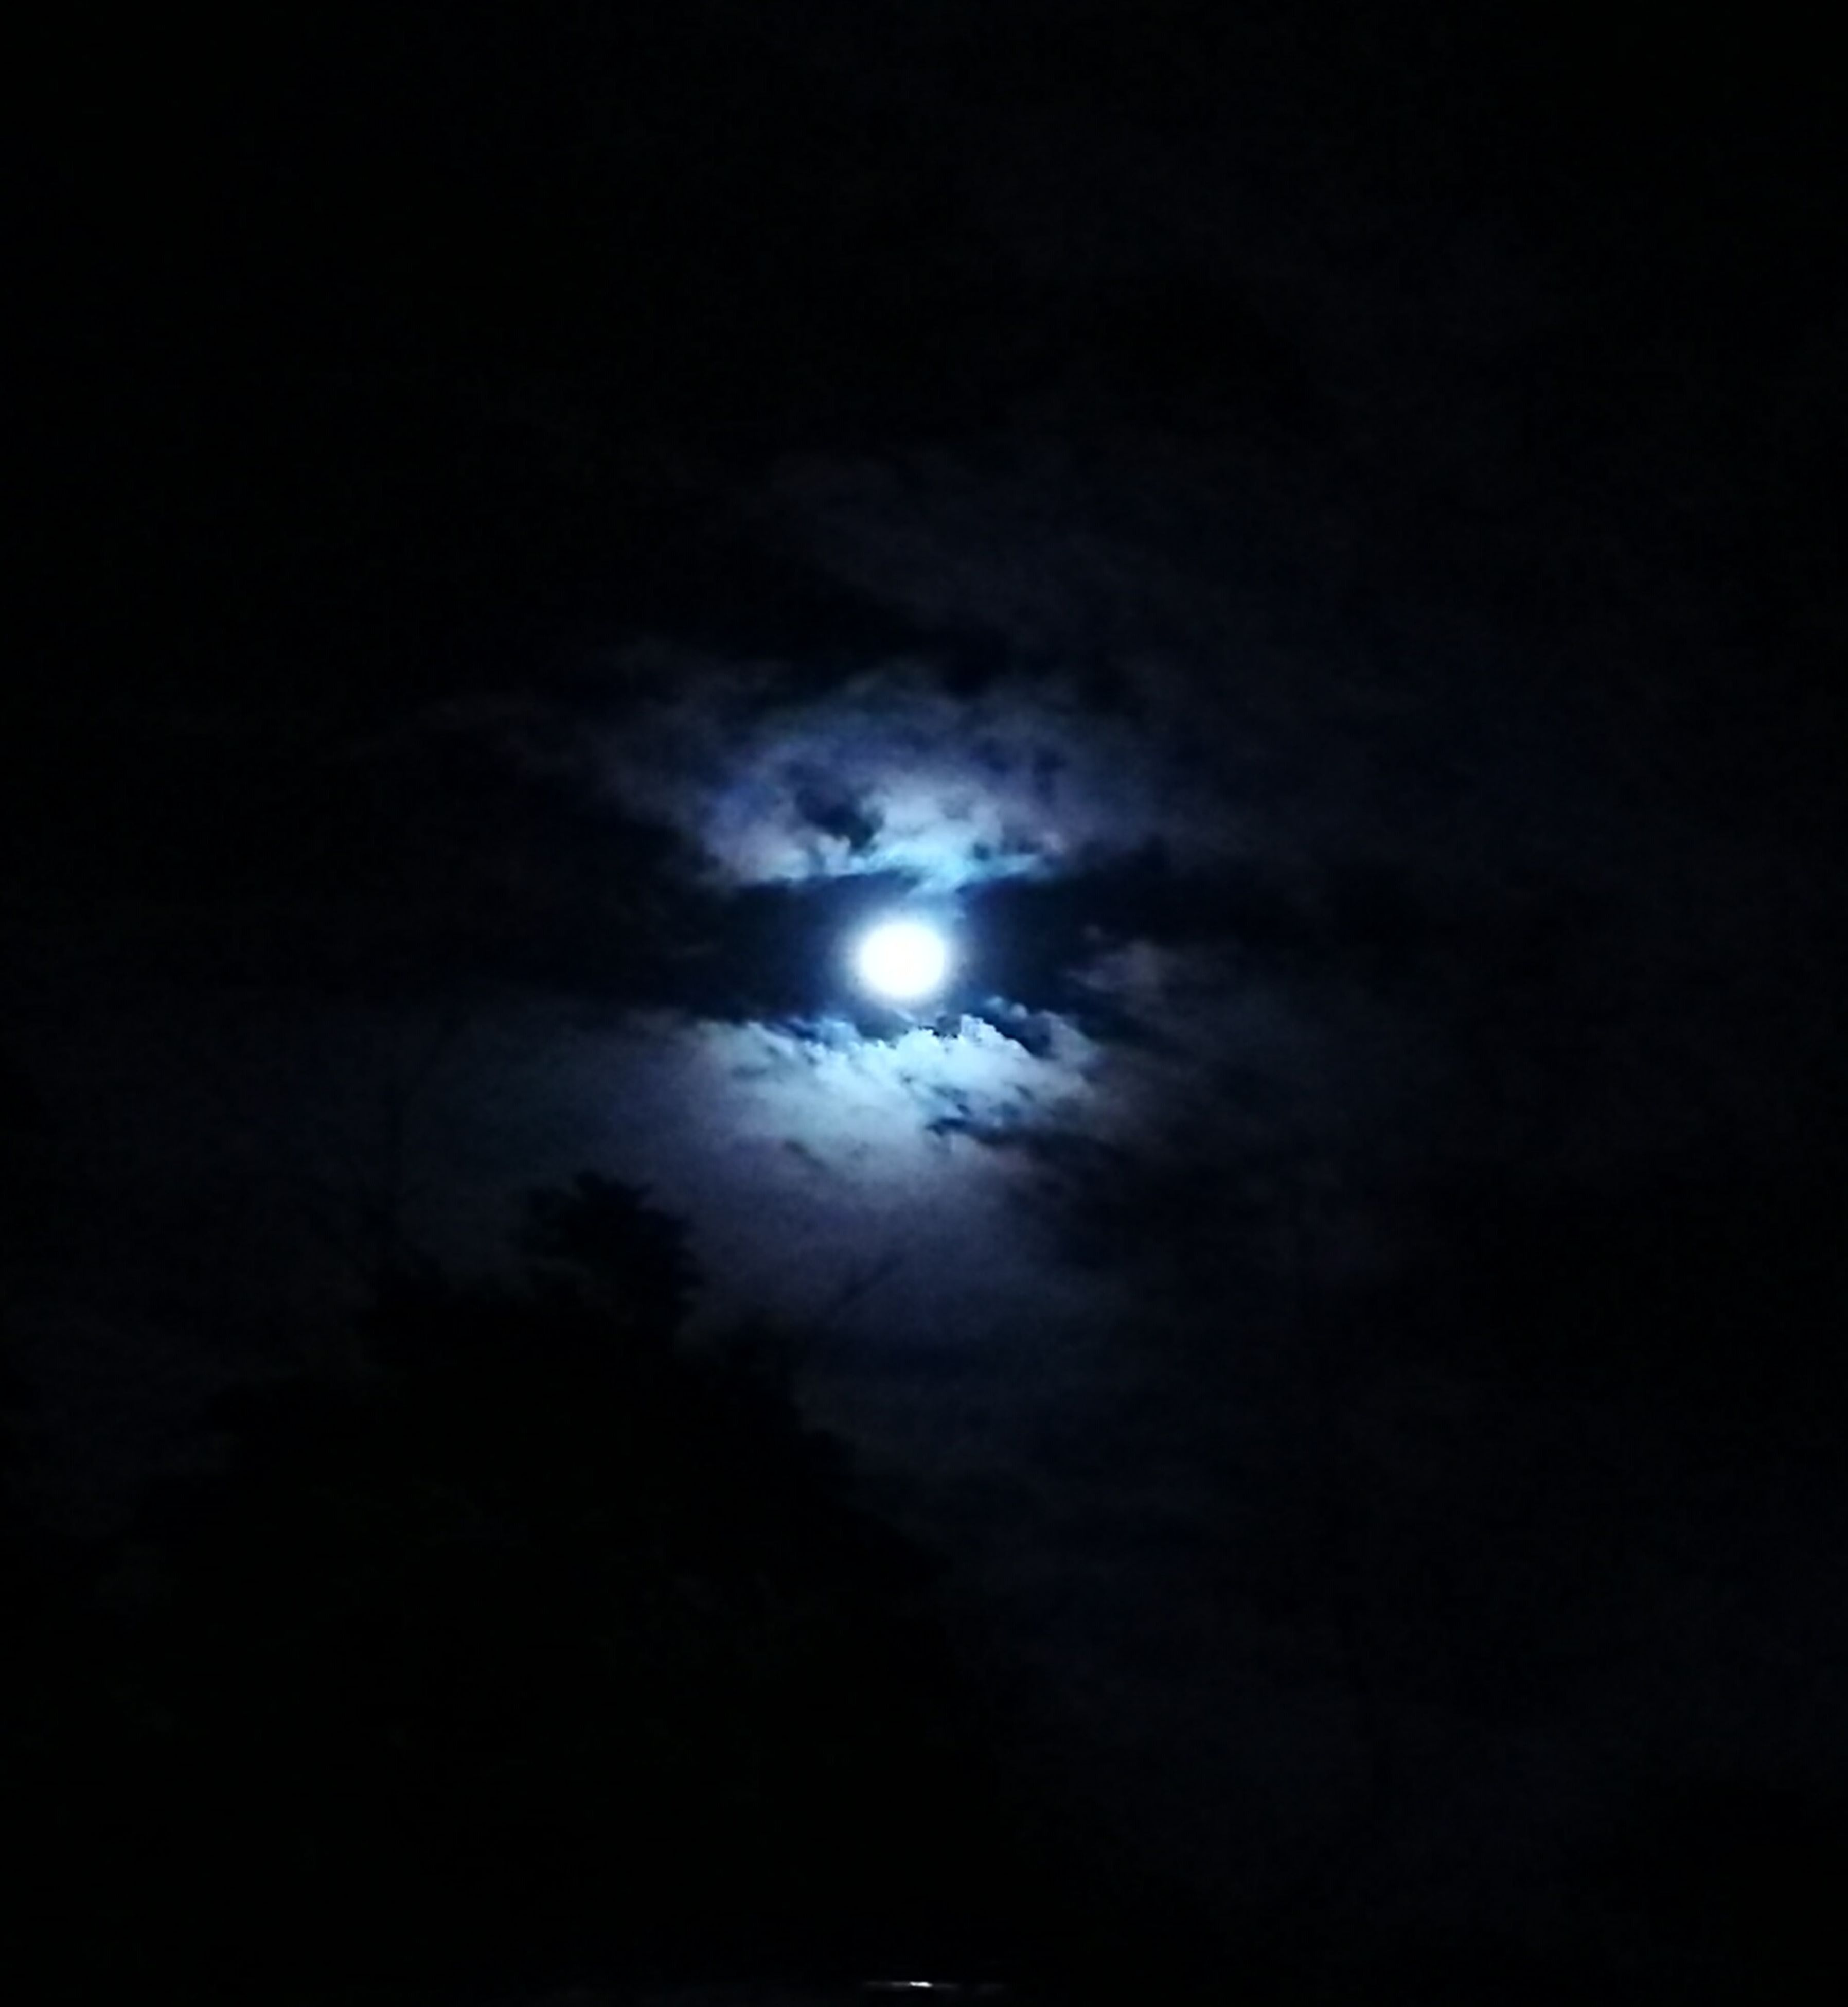 night, nature, sky, beauty in nature, dark, moon, scenics, no people, astronomy, tranquil scene, outdoors, solar eclipse